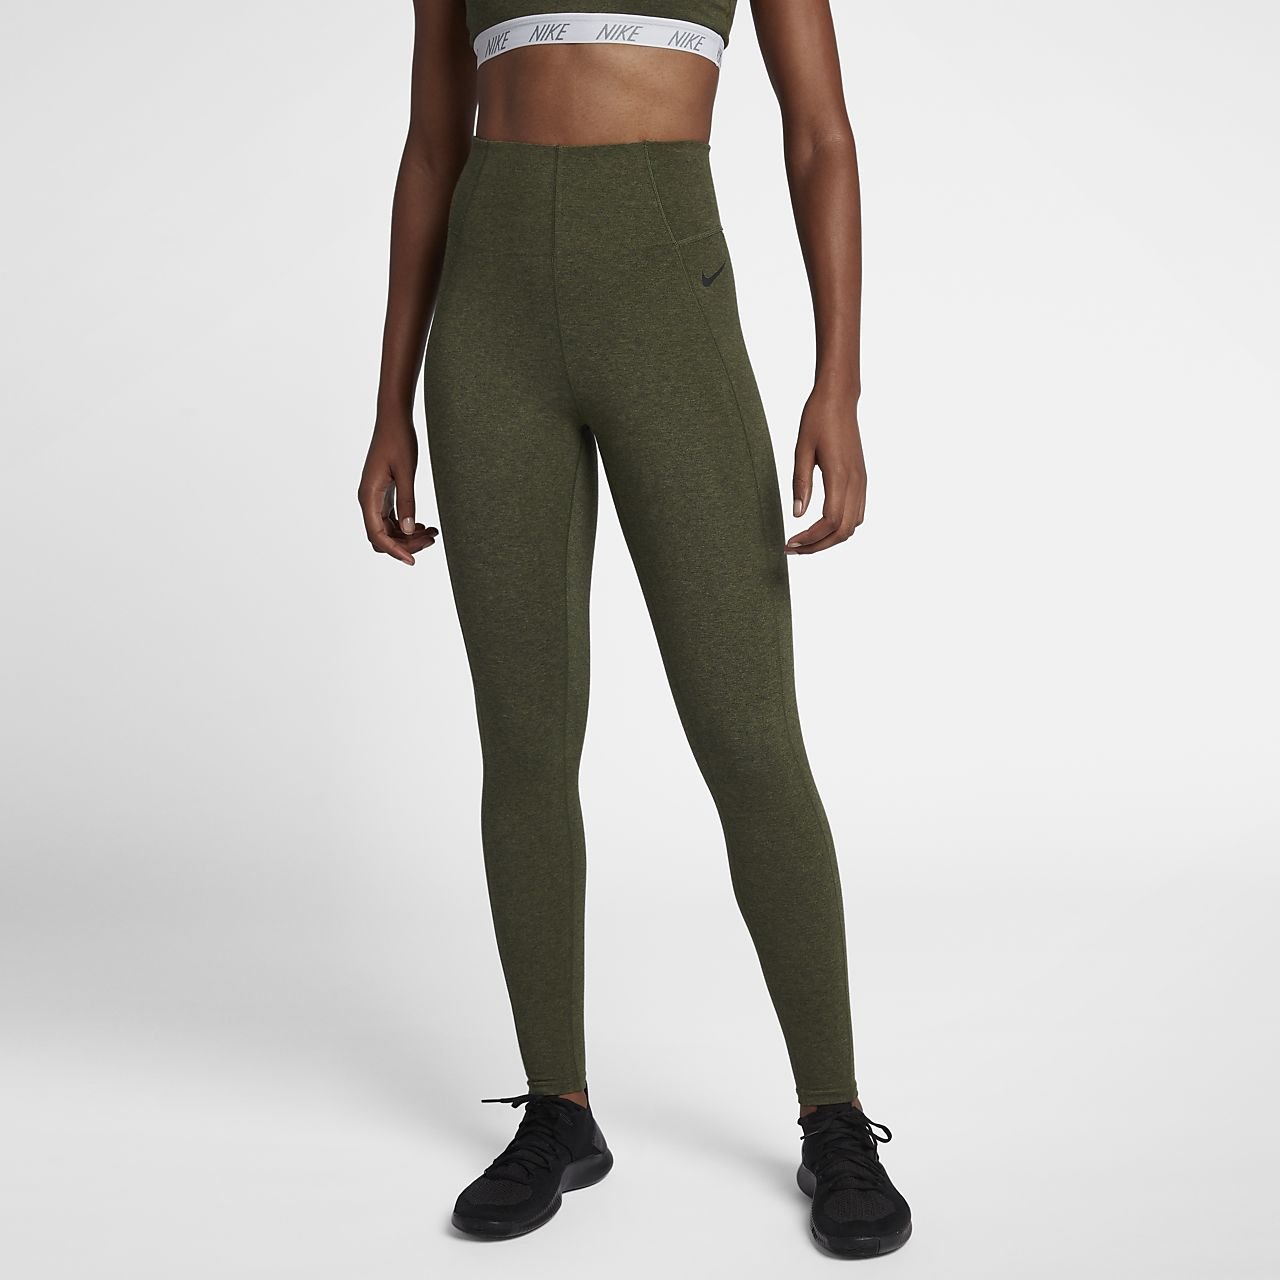 Nike Power Studio Women s High-Rise Training Tights. Nike.com 68474e735d10